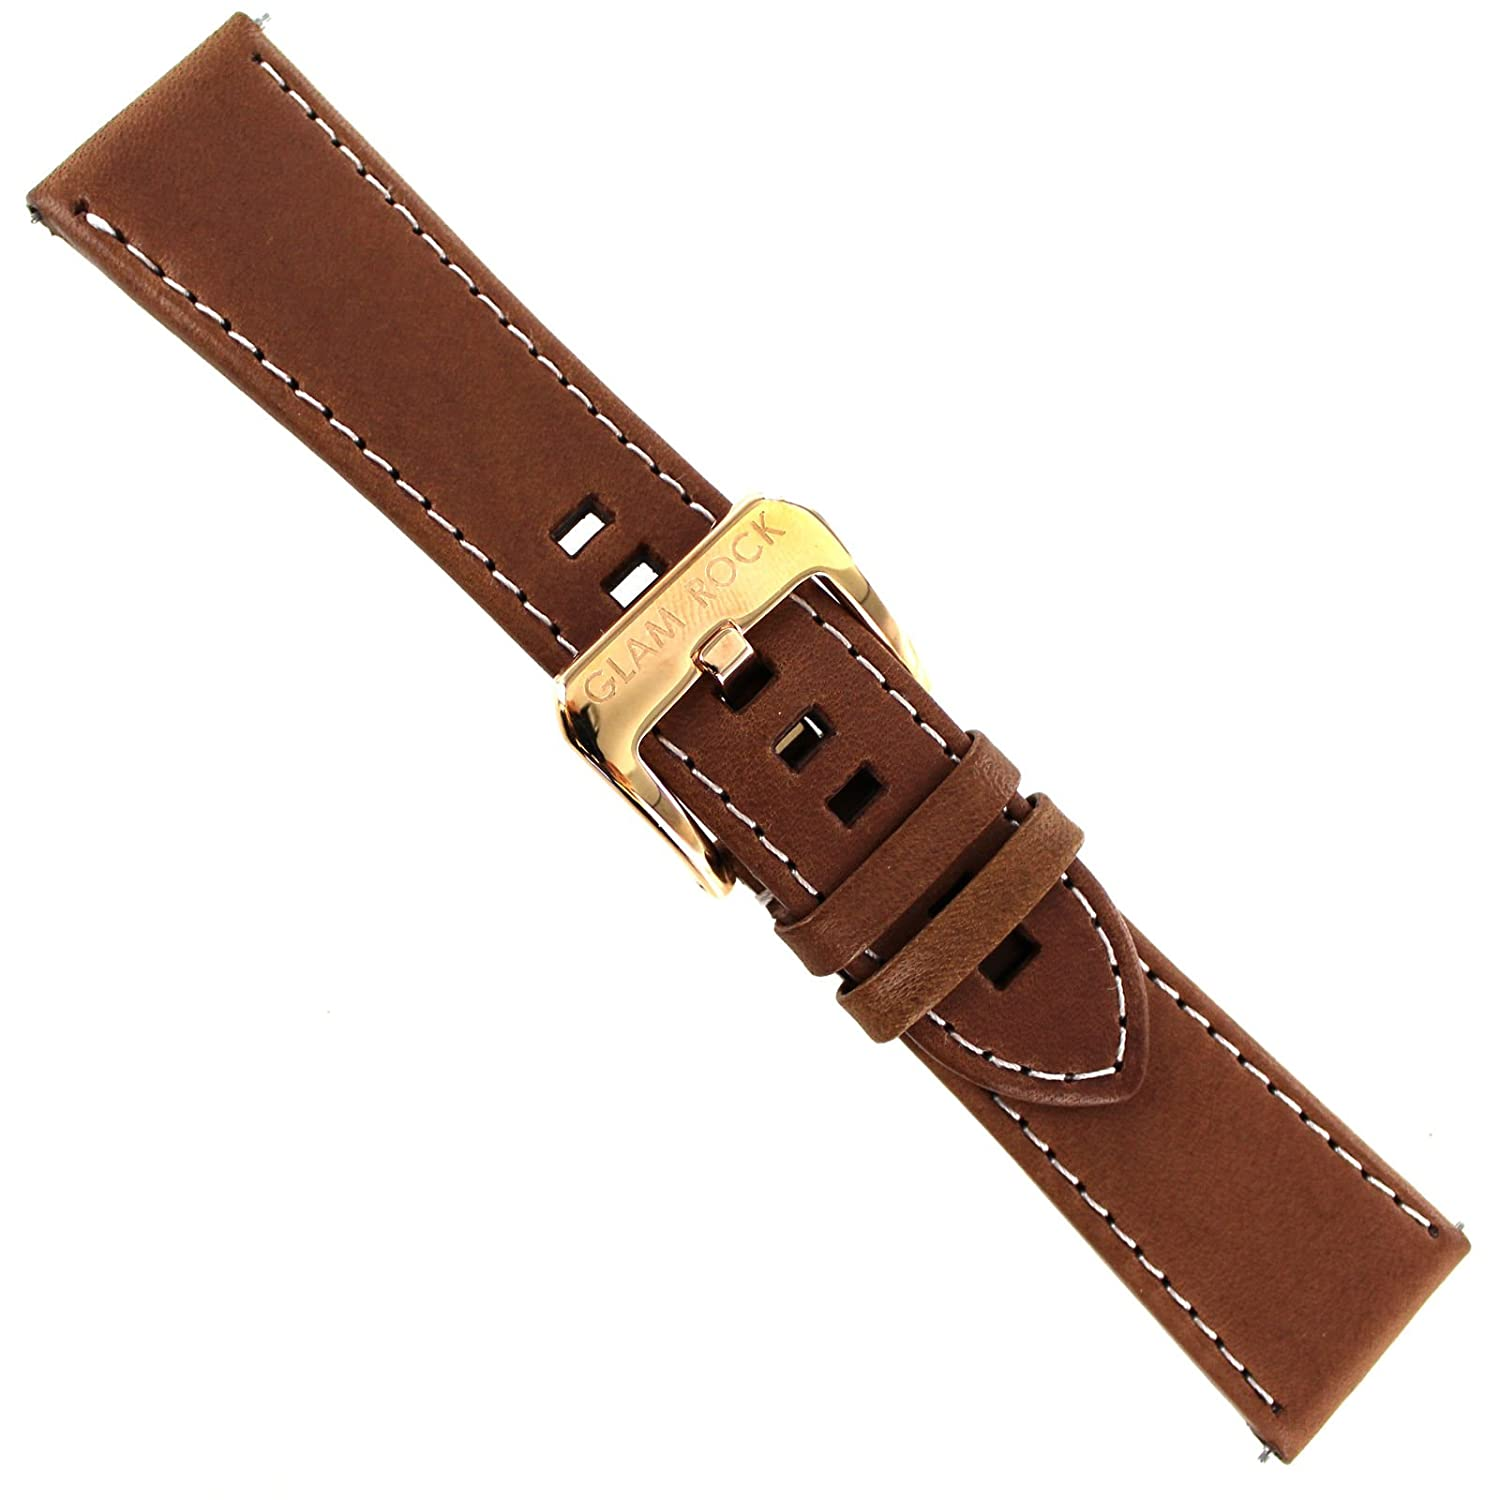 19MM LEATHER STRAP BAND FOR TAG HEUER CARRERA TWIN TIME CALIBRE 7 BROWN 3TC